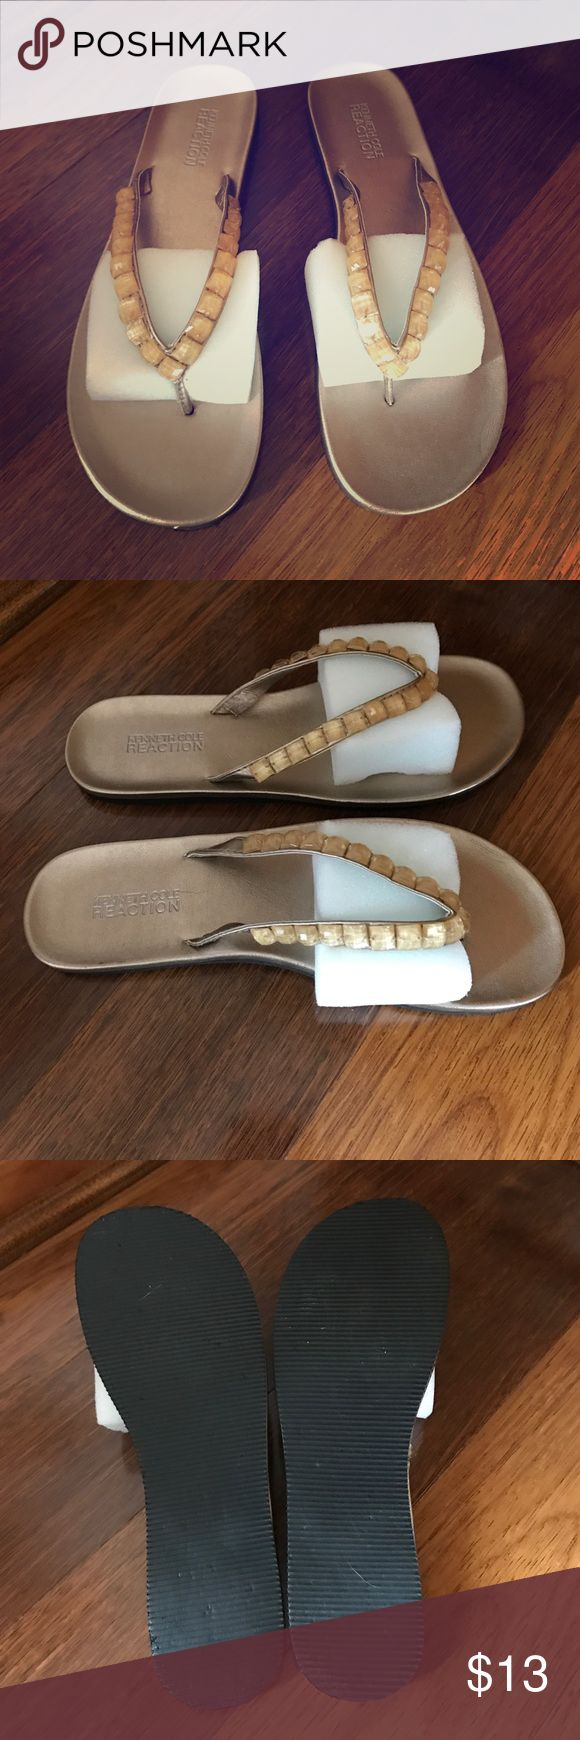 Brand New - Kenneth Cole Gold Flip Flops Never Worn - Size 7 - I love these Beautiful Flip Flops! Received as a gift! Too big for me. They are too beautiful to sit in my closet! Kenneth Cole Reaction Shoes Sandals